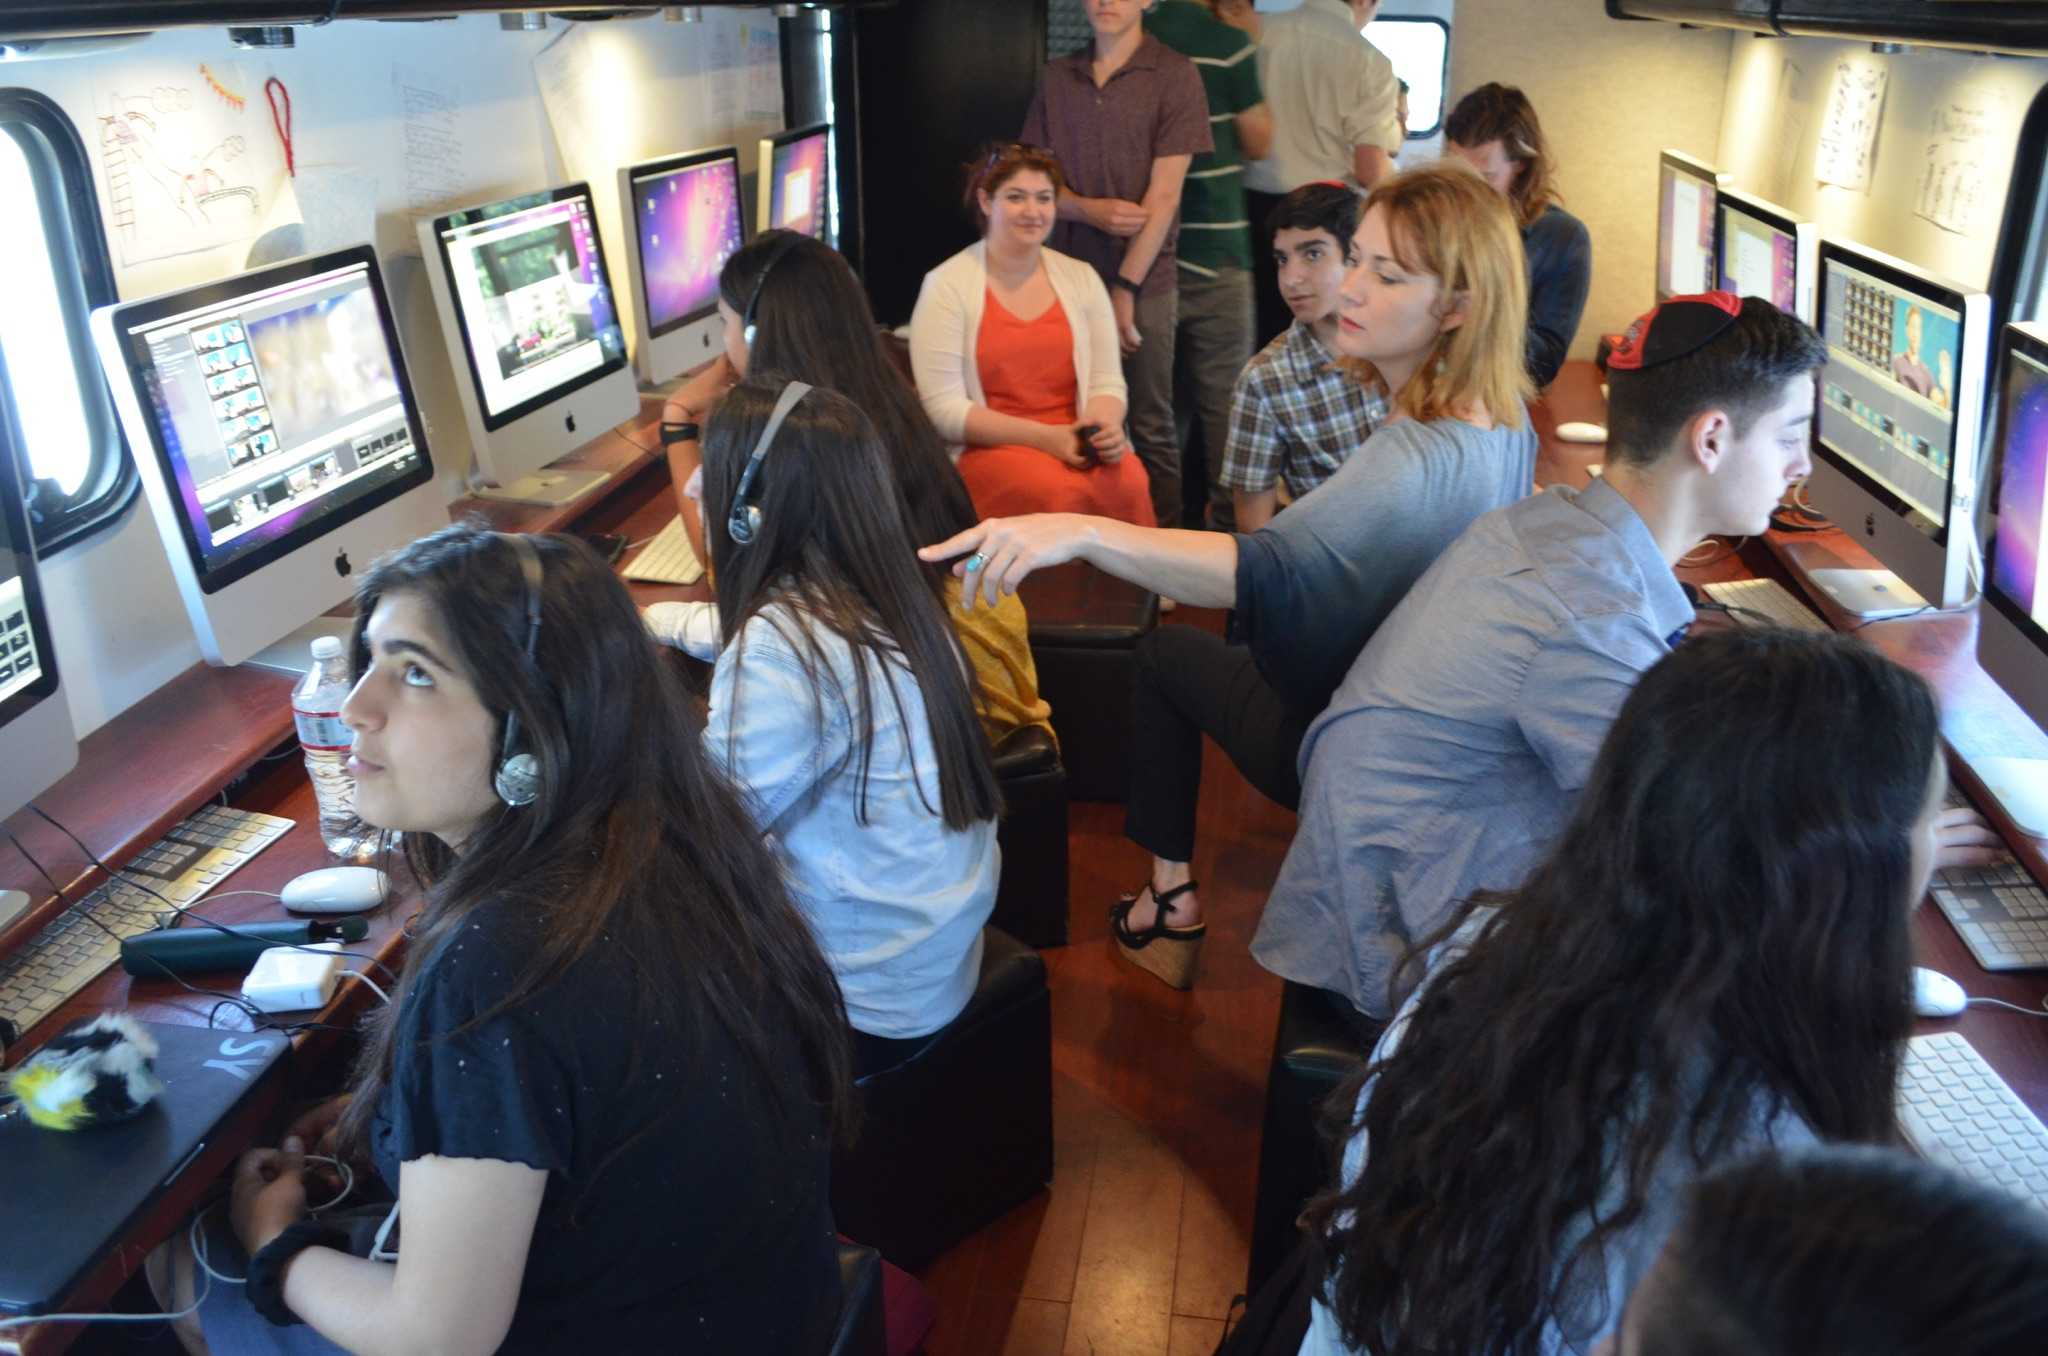 TRAILER: Classes worked inside a Mobile Film Classroom truck to research the Los Angeles housing crisis and later to edit the documentary, which debuts next fall .